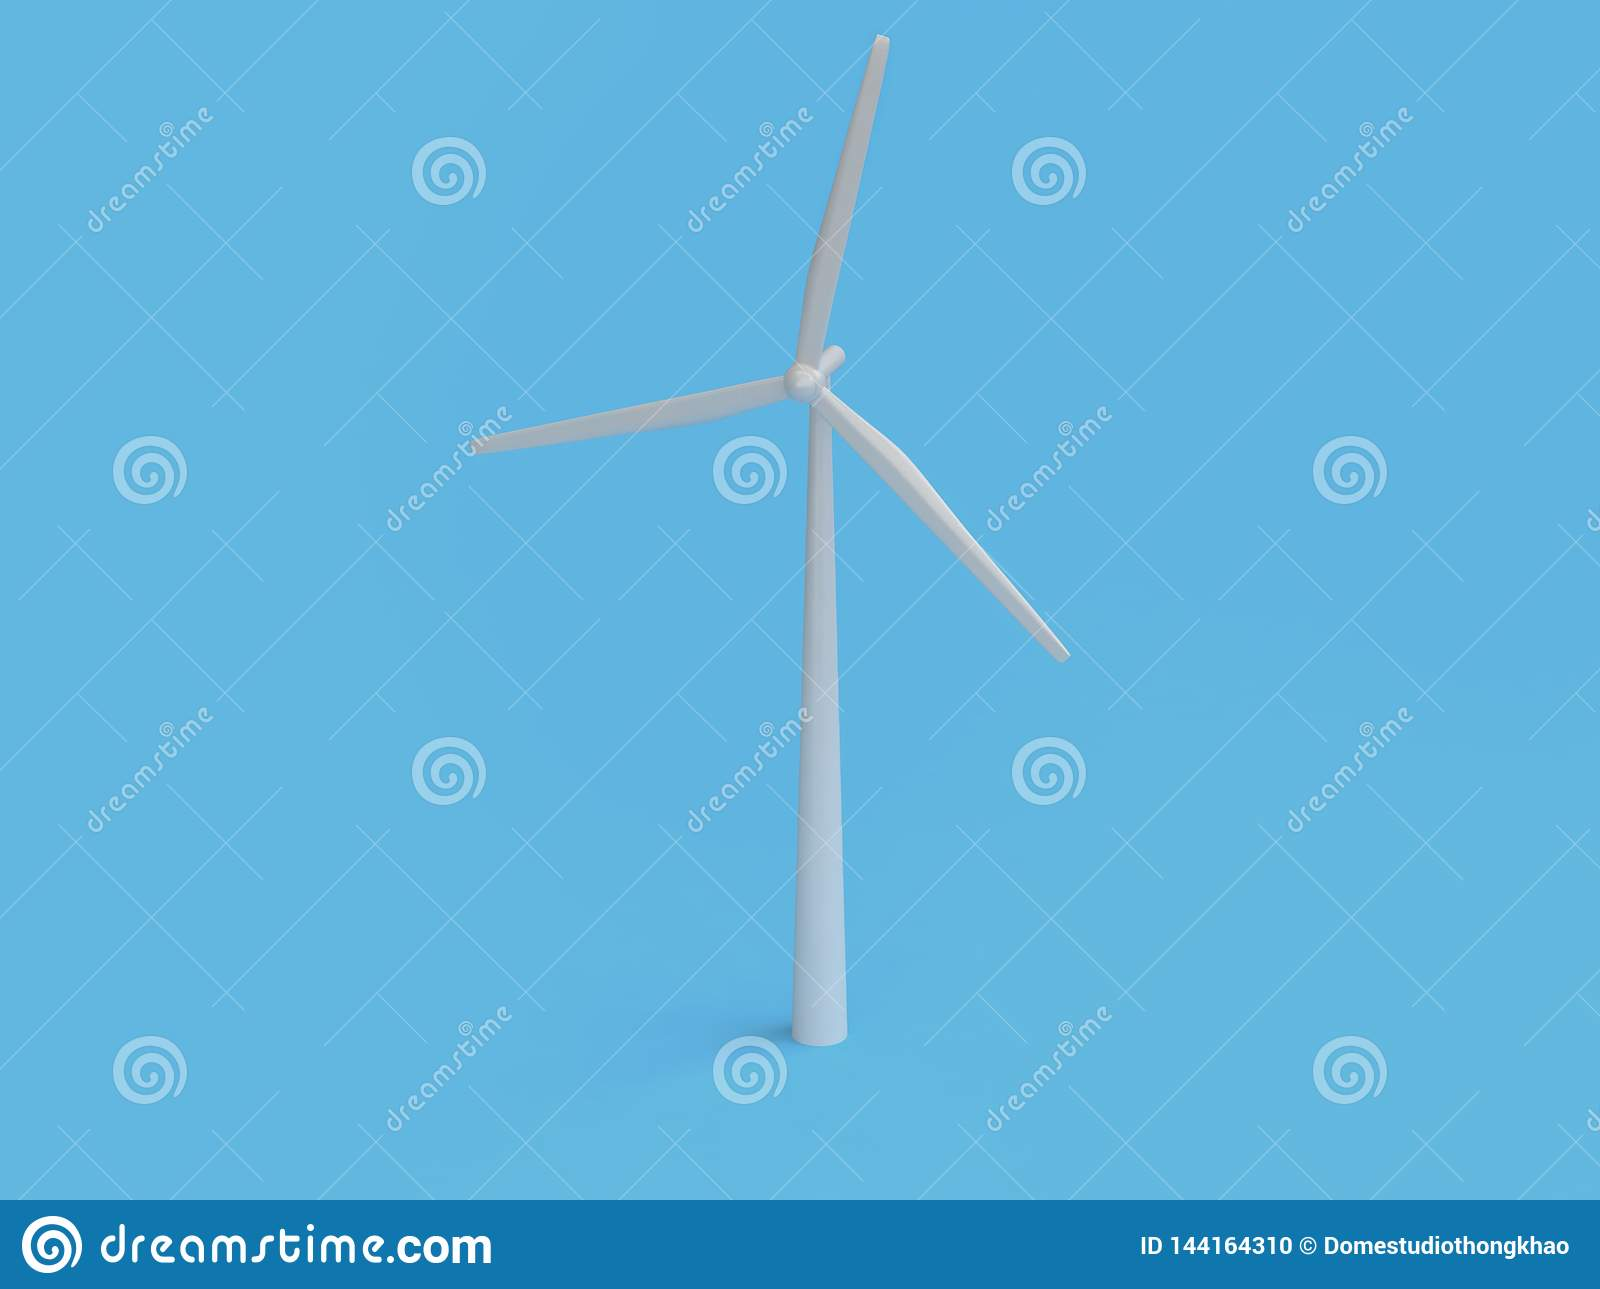 Abstract cartoon style wind turbine minimal blue background 3d render,renewable energy environment save earth